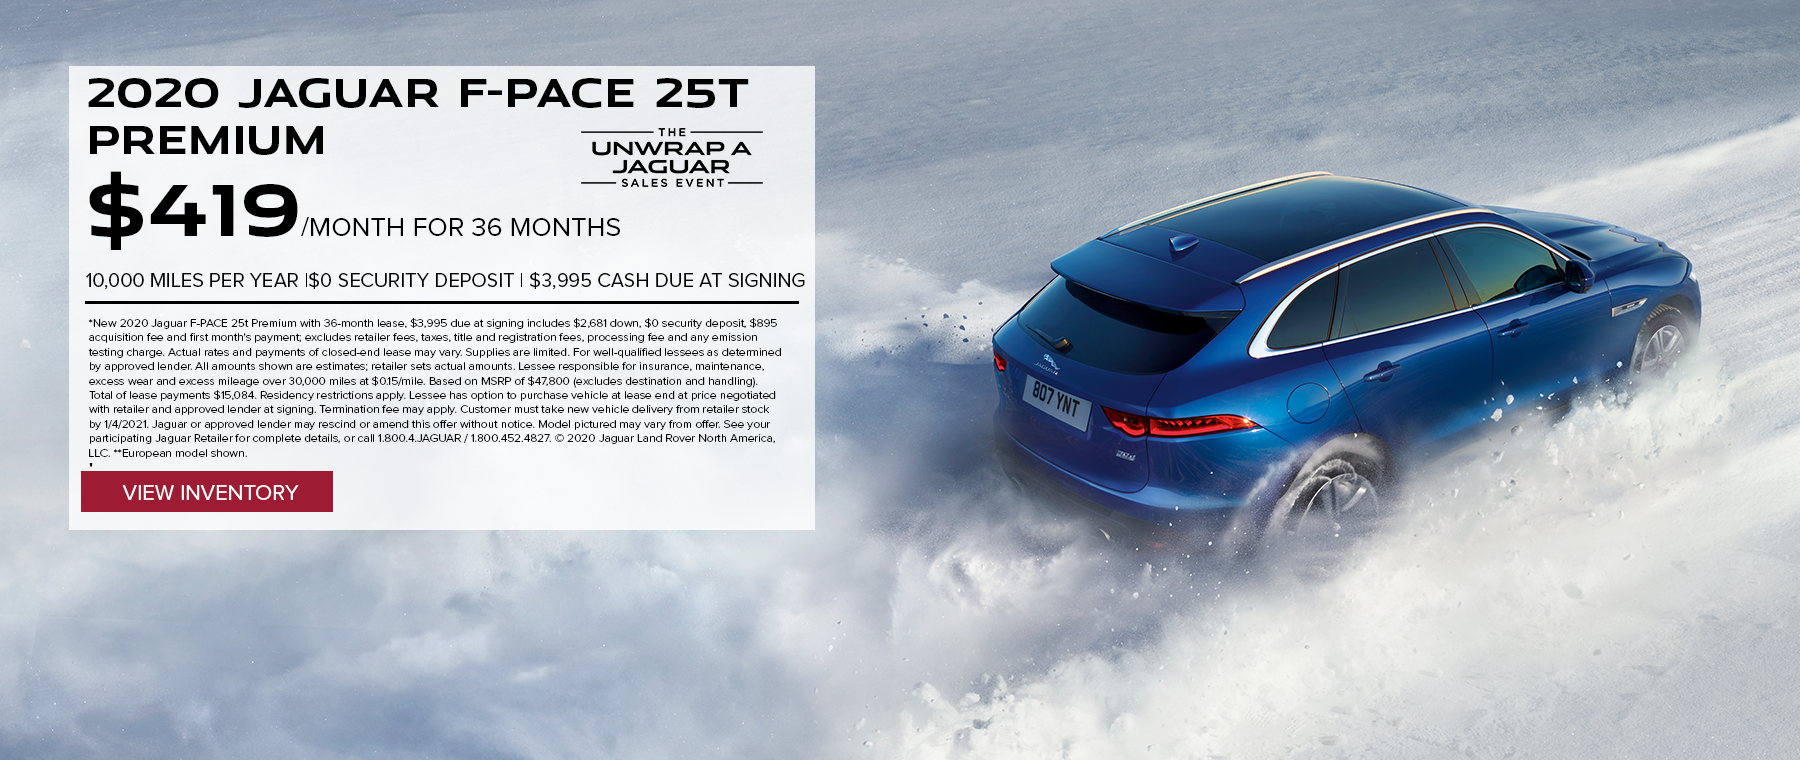 2020 JAGUAR F-PACE 25T PREMIUM. $419 PER MONTH. 36 MONTH LEASE TERM. $3,995 CASH DUE AT SIGNING. $0 SECURITY DEPOSIT. 10,000 MILES PER YEAR. EXCLUDES RETAILER FEES, TAXES, TITLE AND REGISTRATION FEES, PROCESSING FEE AND ANY EMISSION TESTING CHARGE. OFFER ENDS 1/4/2021.